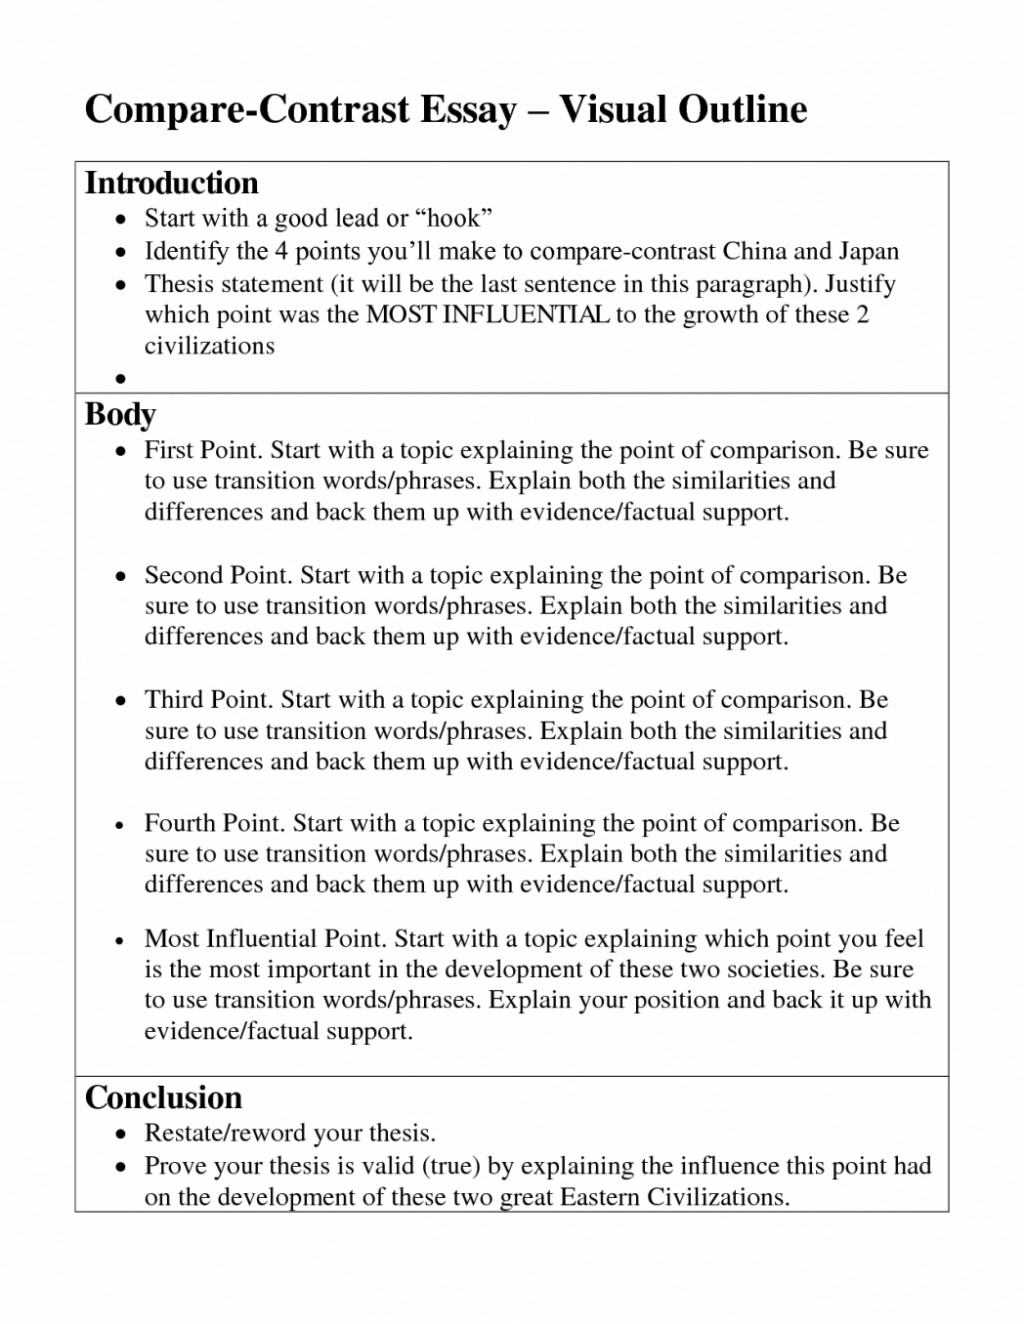 009 Compare And Contrast Essay Topics For High School Students English College Pdf Research Paper 1048x1356 Fantastic Sports Prompts 5th Grade 4th Large